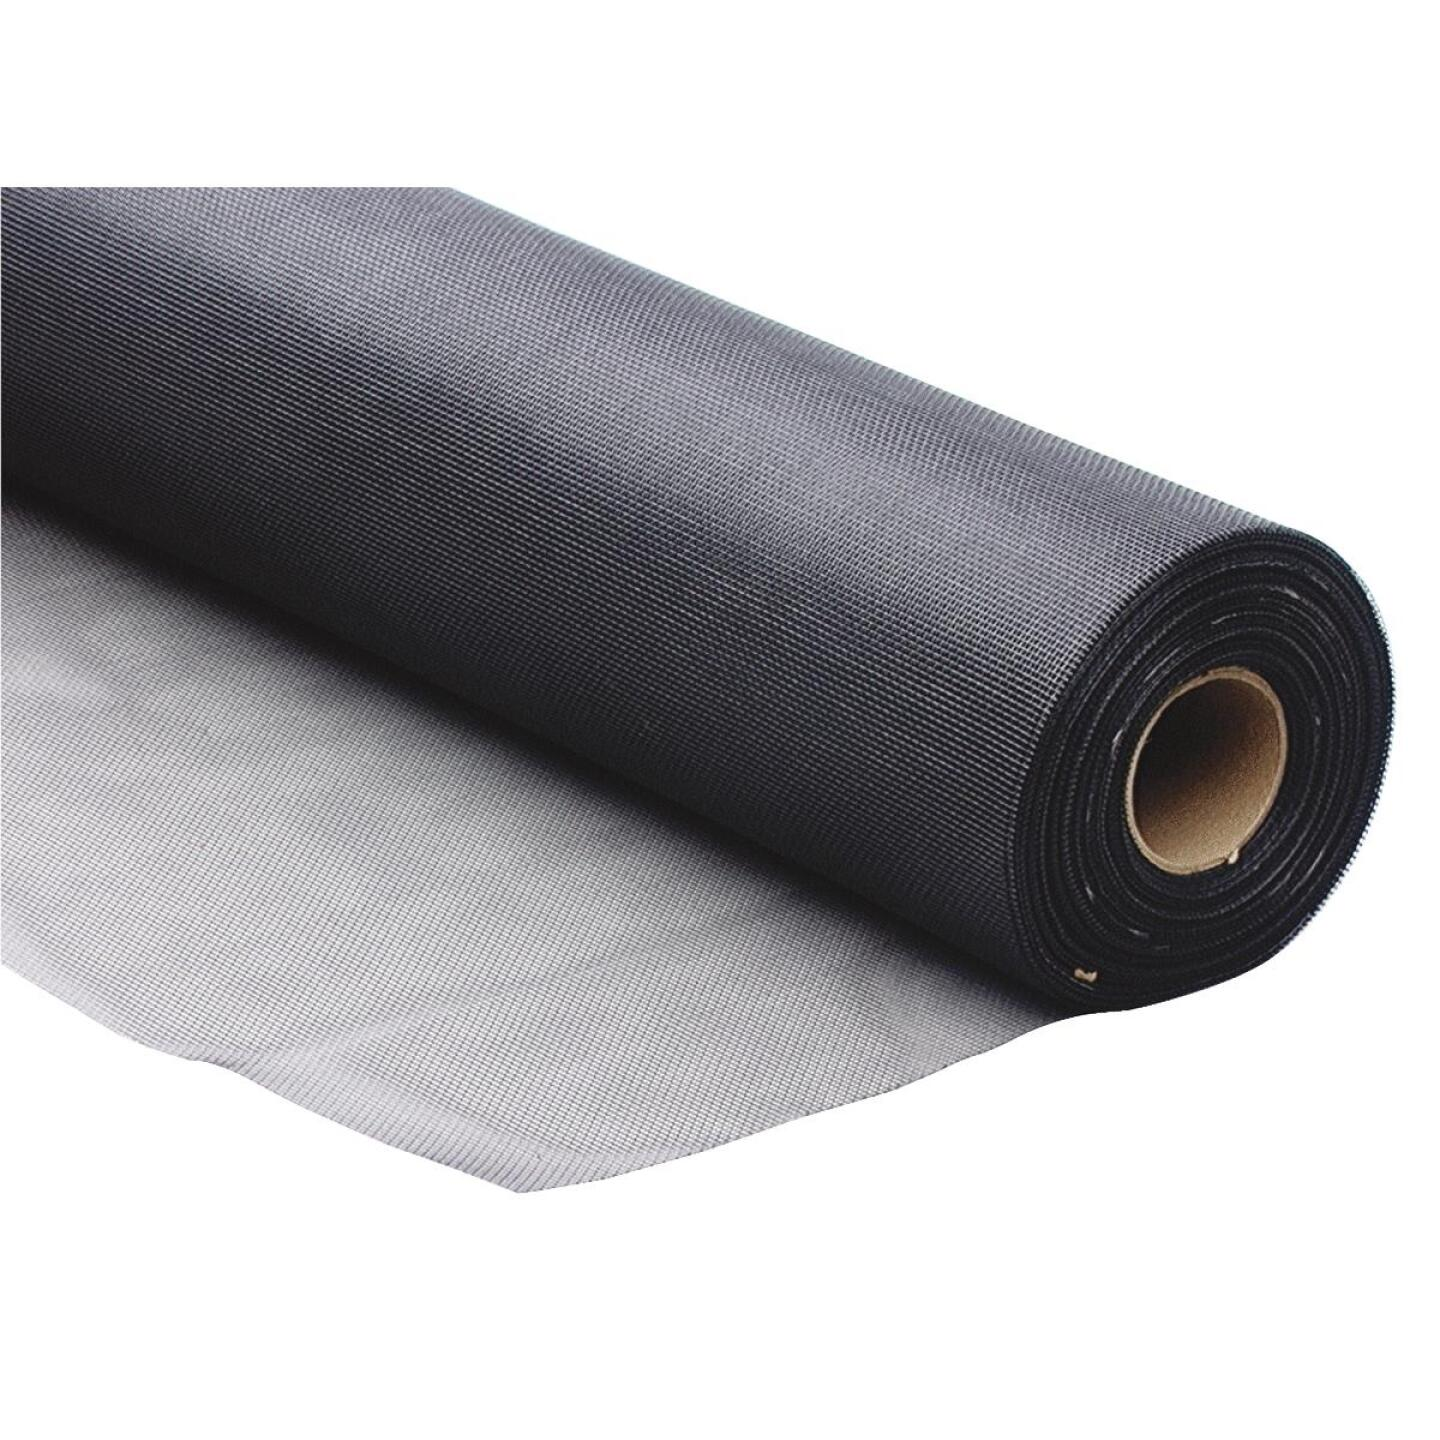 Phifer 48 In. x 100 Ft. Charcoal Fiberglass Mesh Screen Cloth Image 3